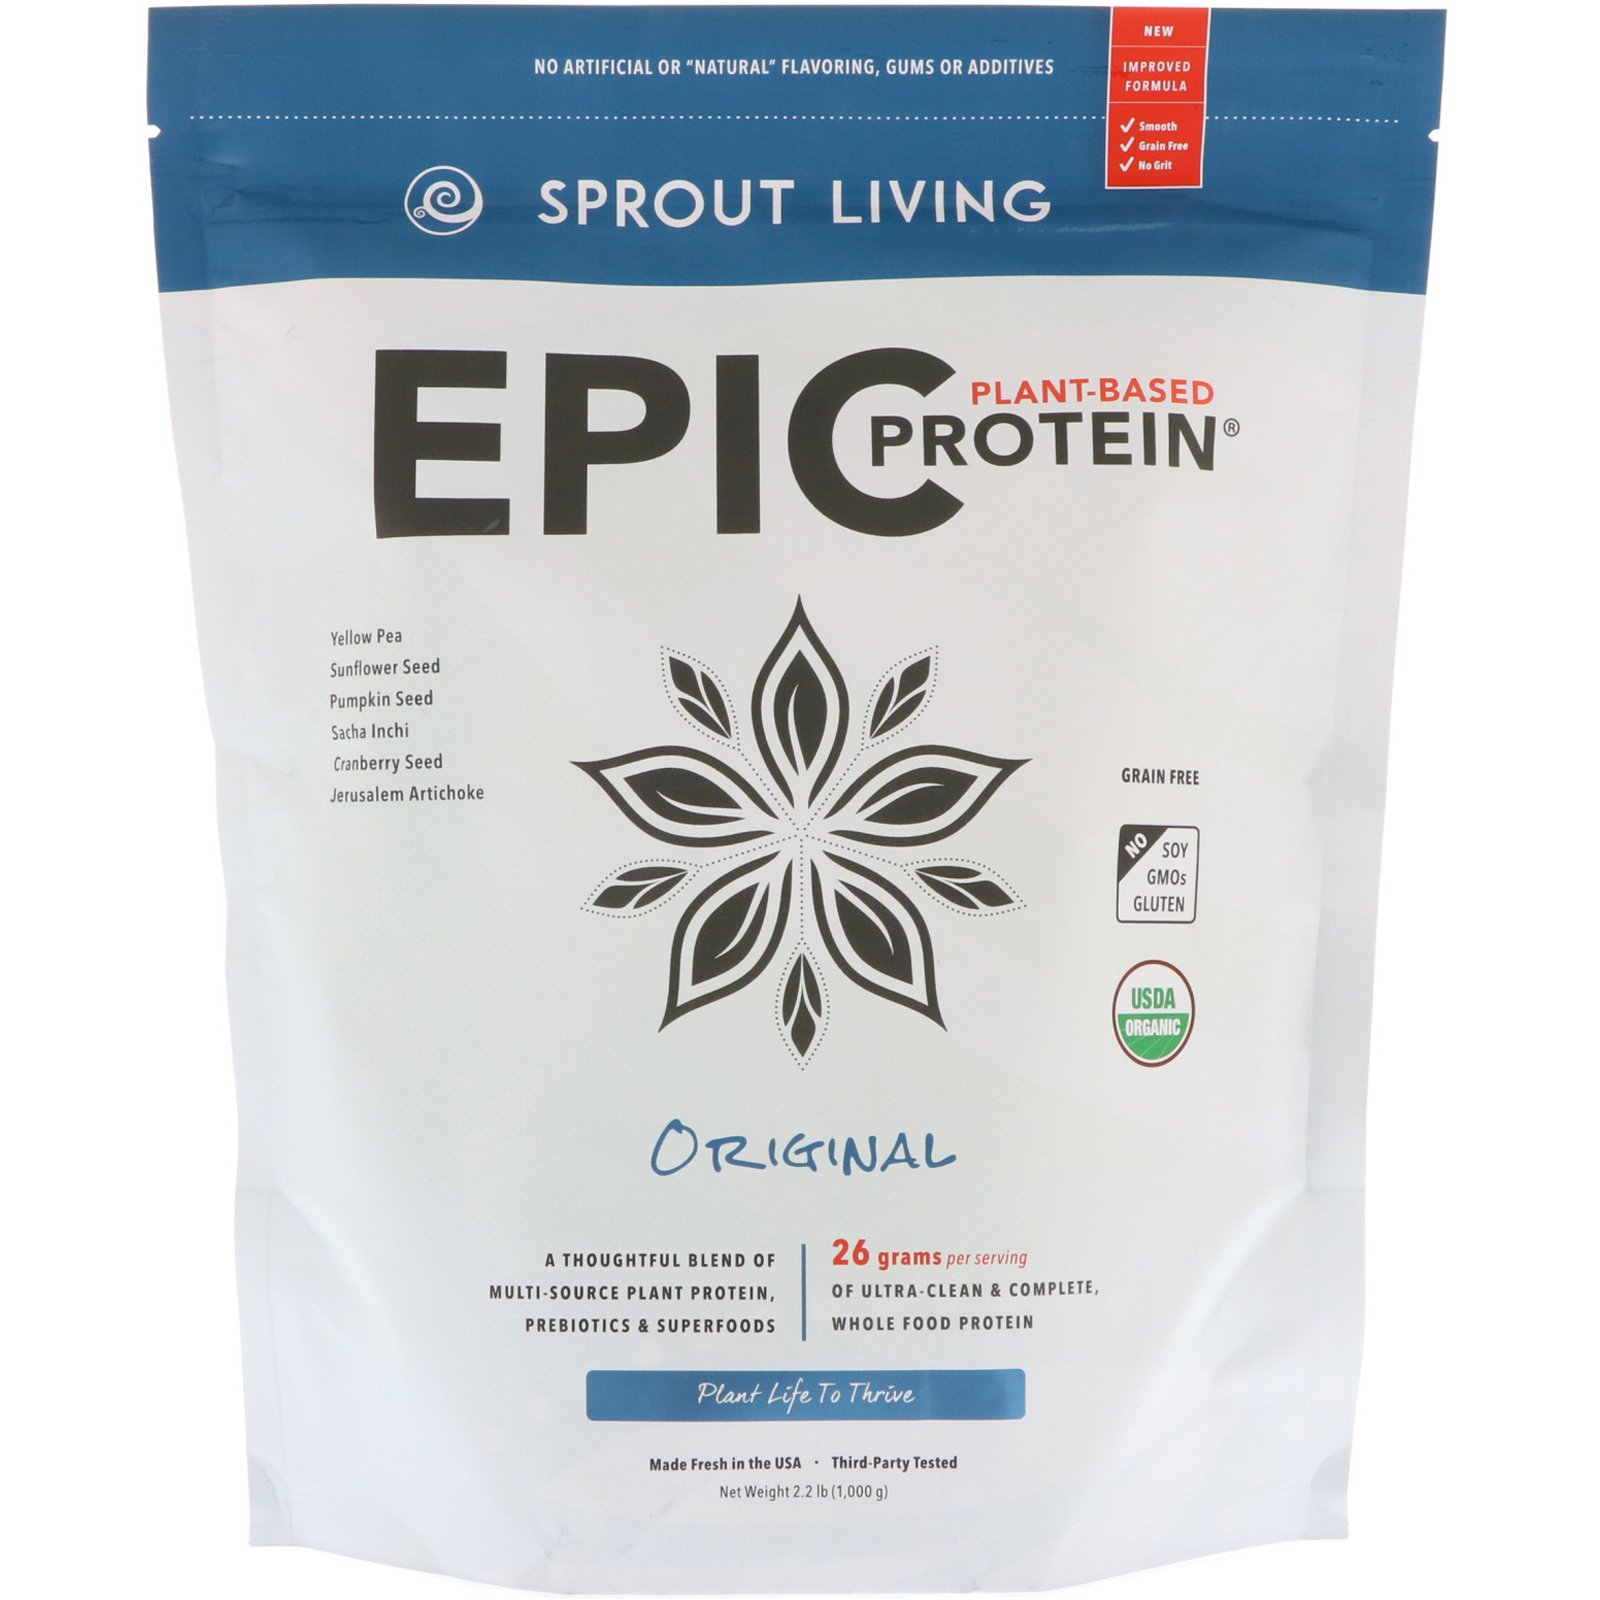 Sprout Living Epic Protein Powder, Original Flavor, Organic Plant Protein, No Additives, Gluten Free, 26 Grams Clean Vegan Protein (2.2 pounds, 29 Servings)